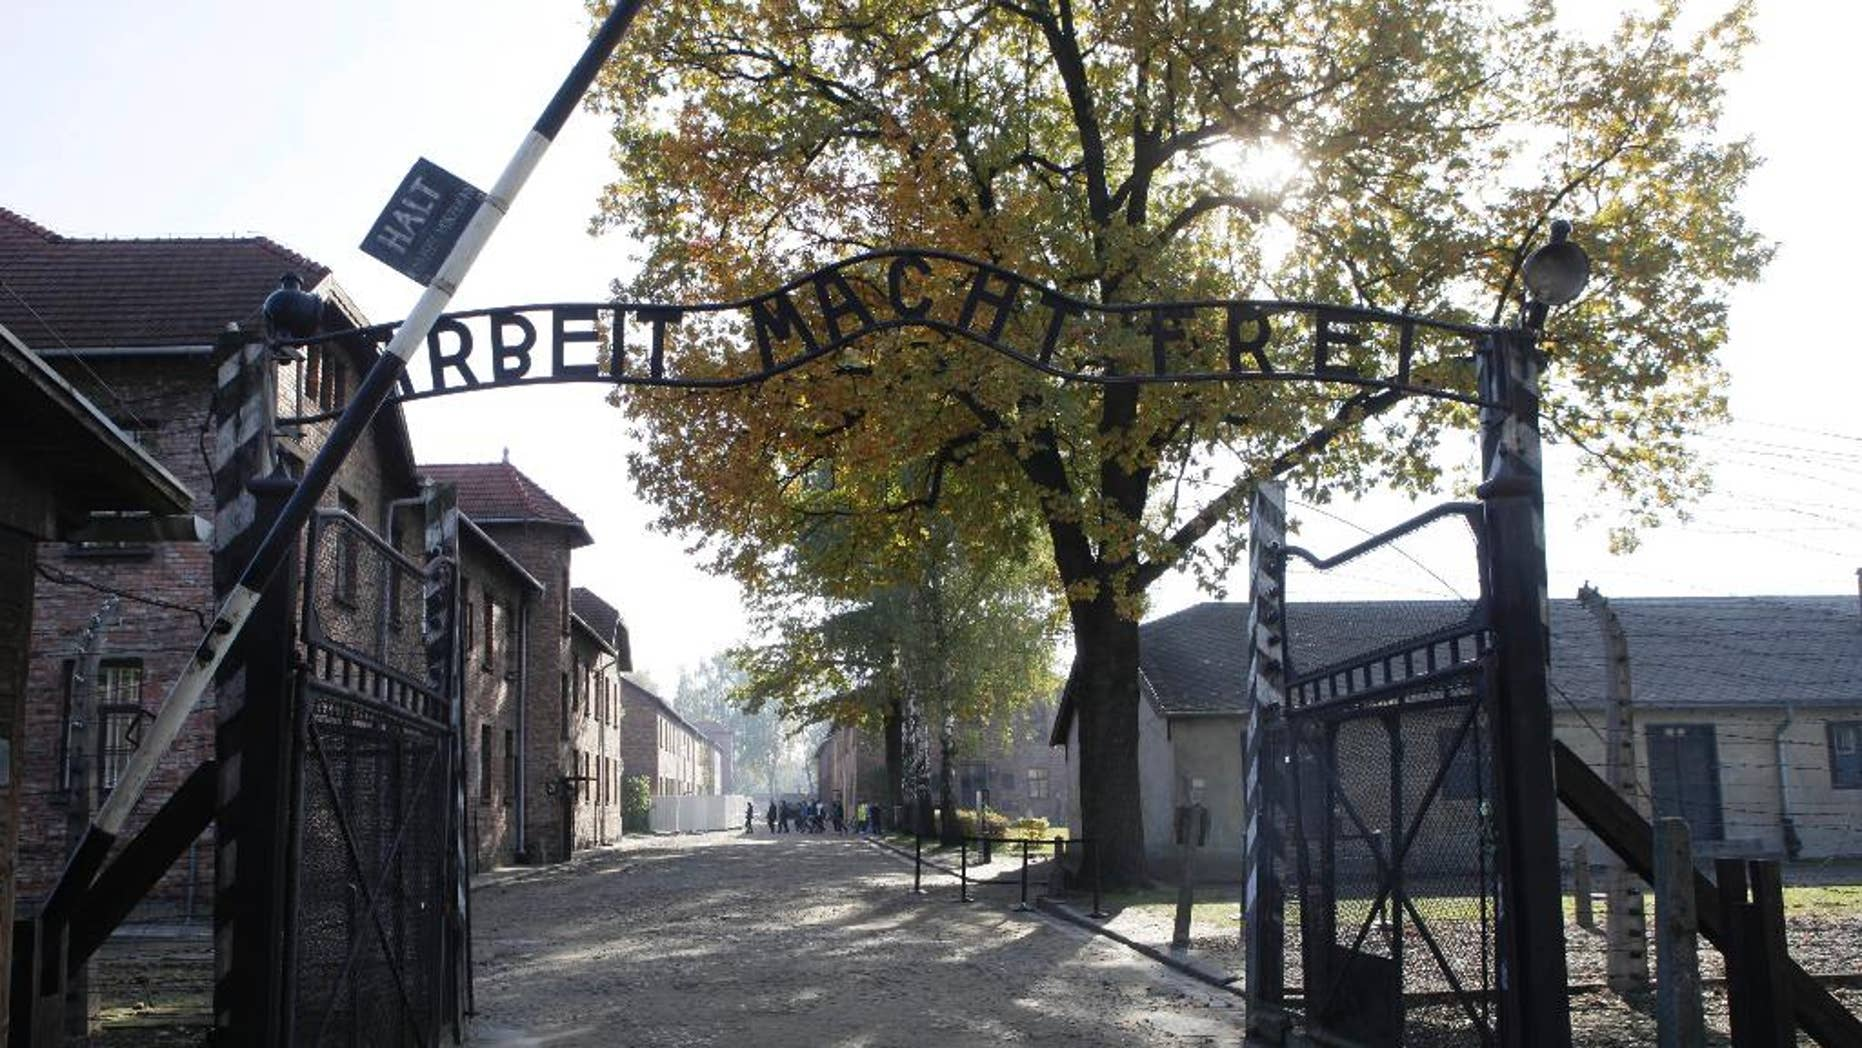 """File - In this Oct. 19, 2012 file photo the entrance with the inscription """"Arbeit Macht Frei"""" (Work Sets You Free) gate of the former German Nazi death camp of Auschwitz is seen at the Auschwitz-Birkenau memorial in Oswiecim, Poland. A group of nearly a dozen people took off their clothes, killed a sheep and chained themselves together by the gate before being detained by police, Friday, March 24, 2017.  (AP Photo/Czarek Sokolowski,file)"""